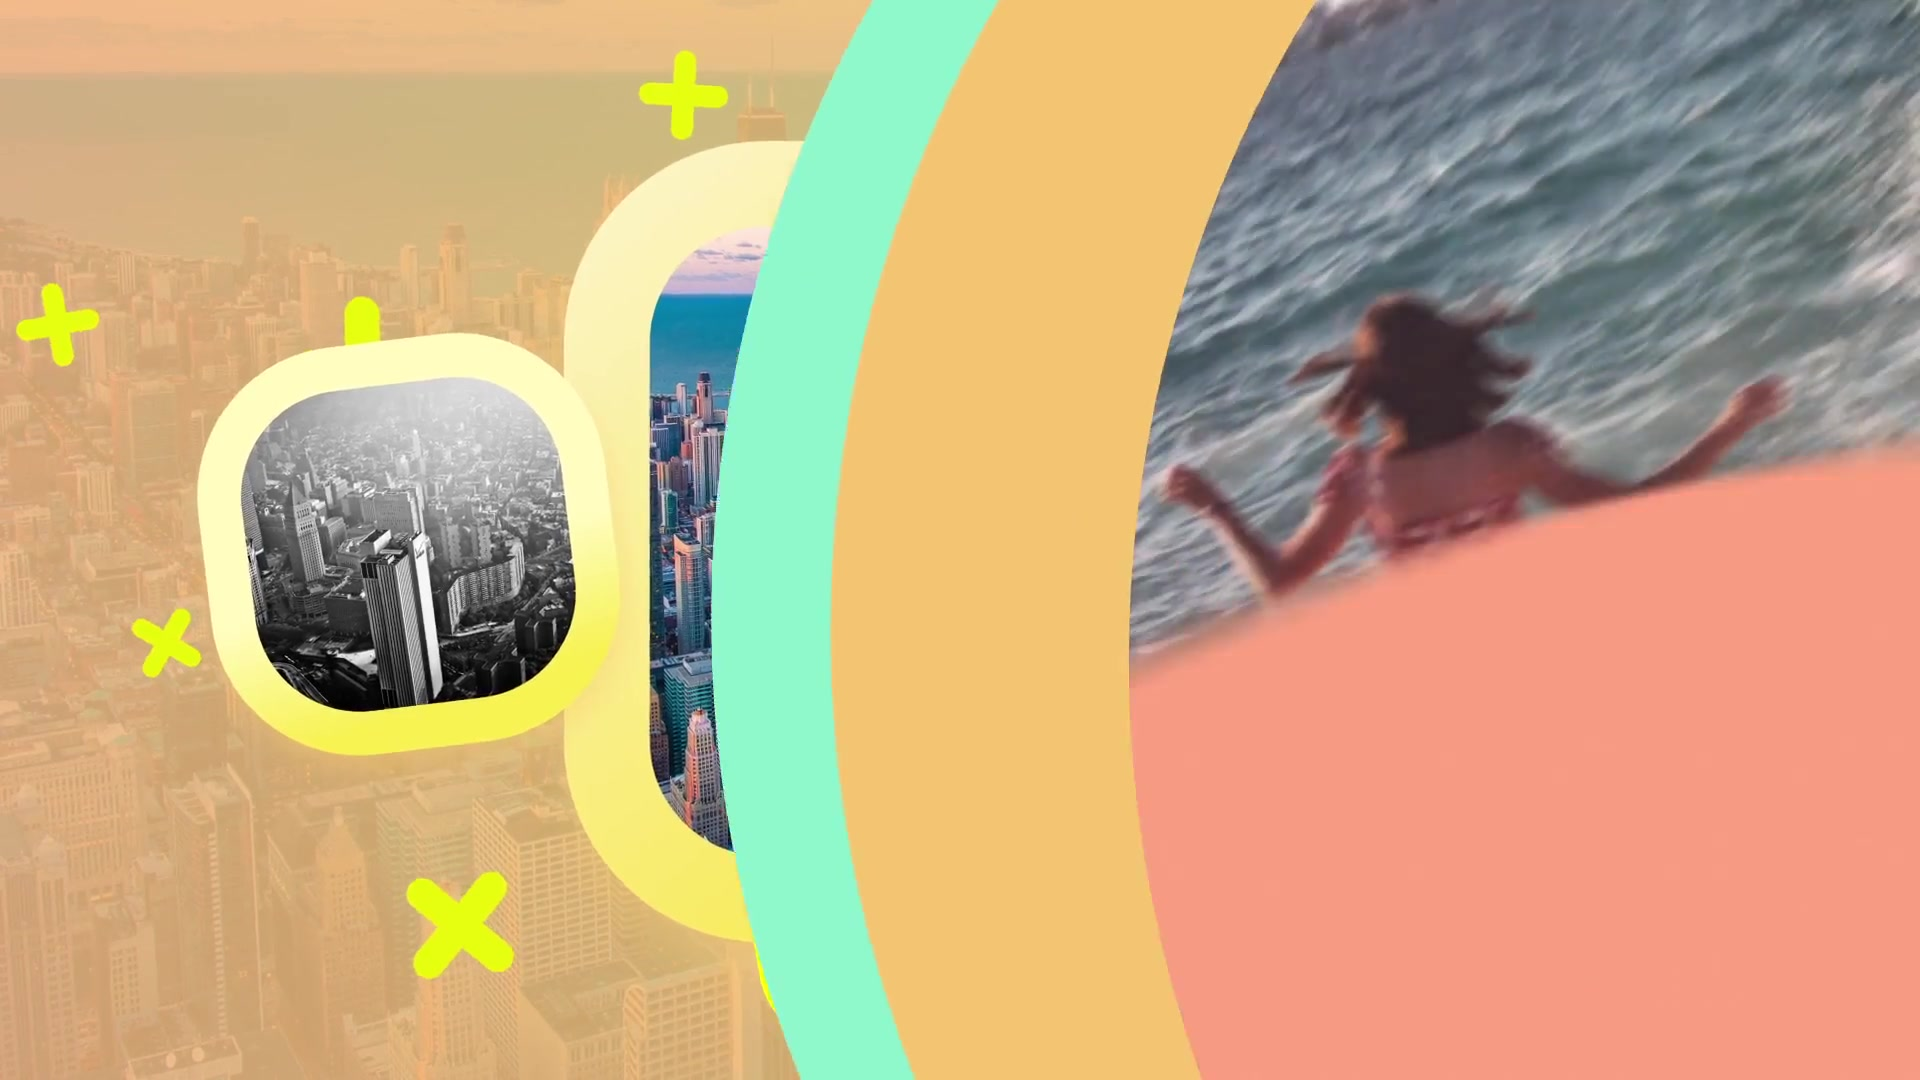 Bright Summer Slideshow - Download Videohive 20254561